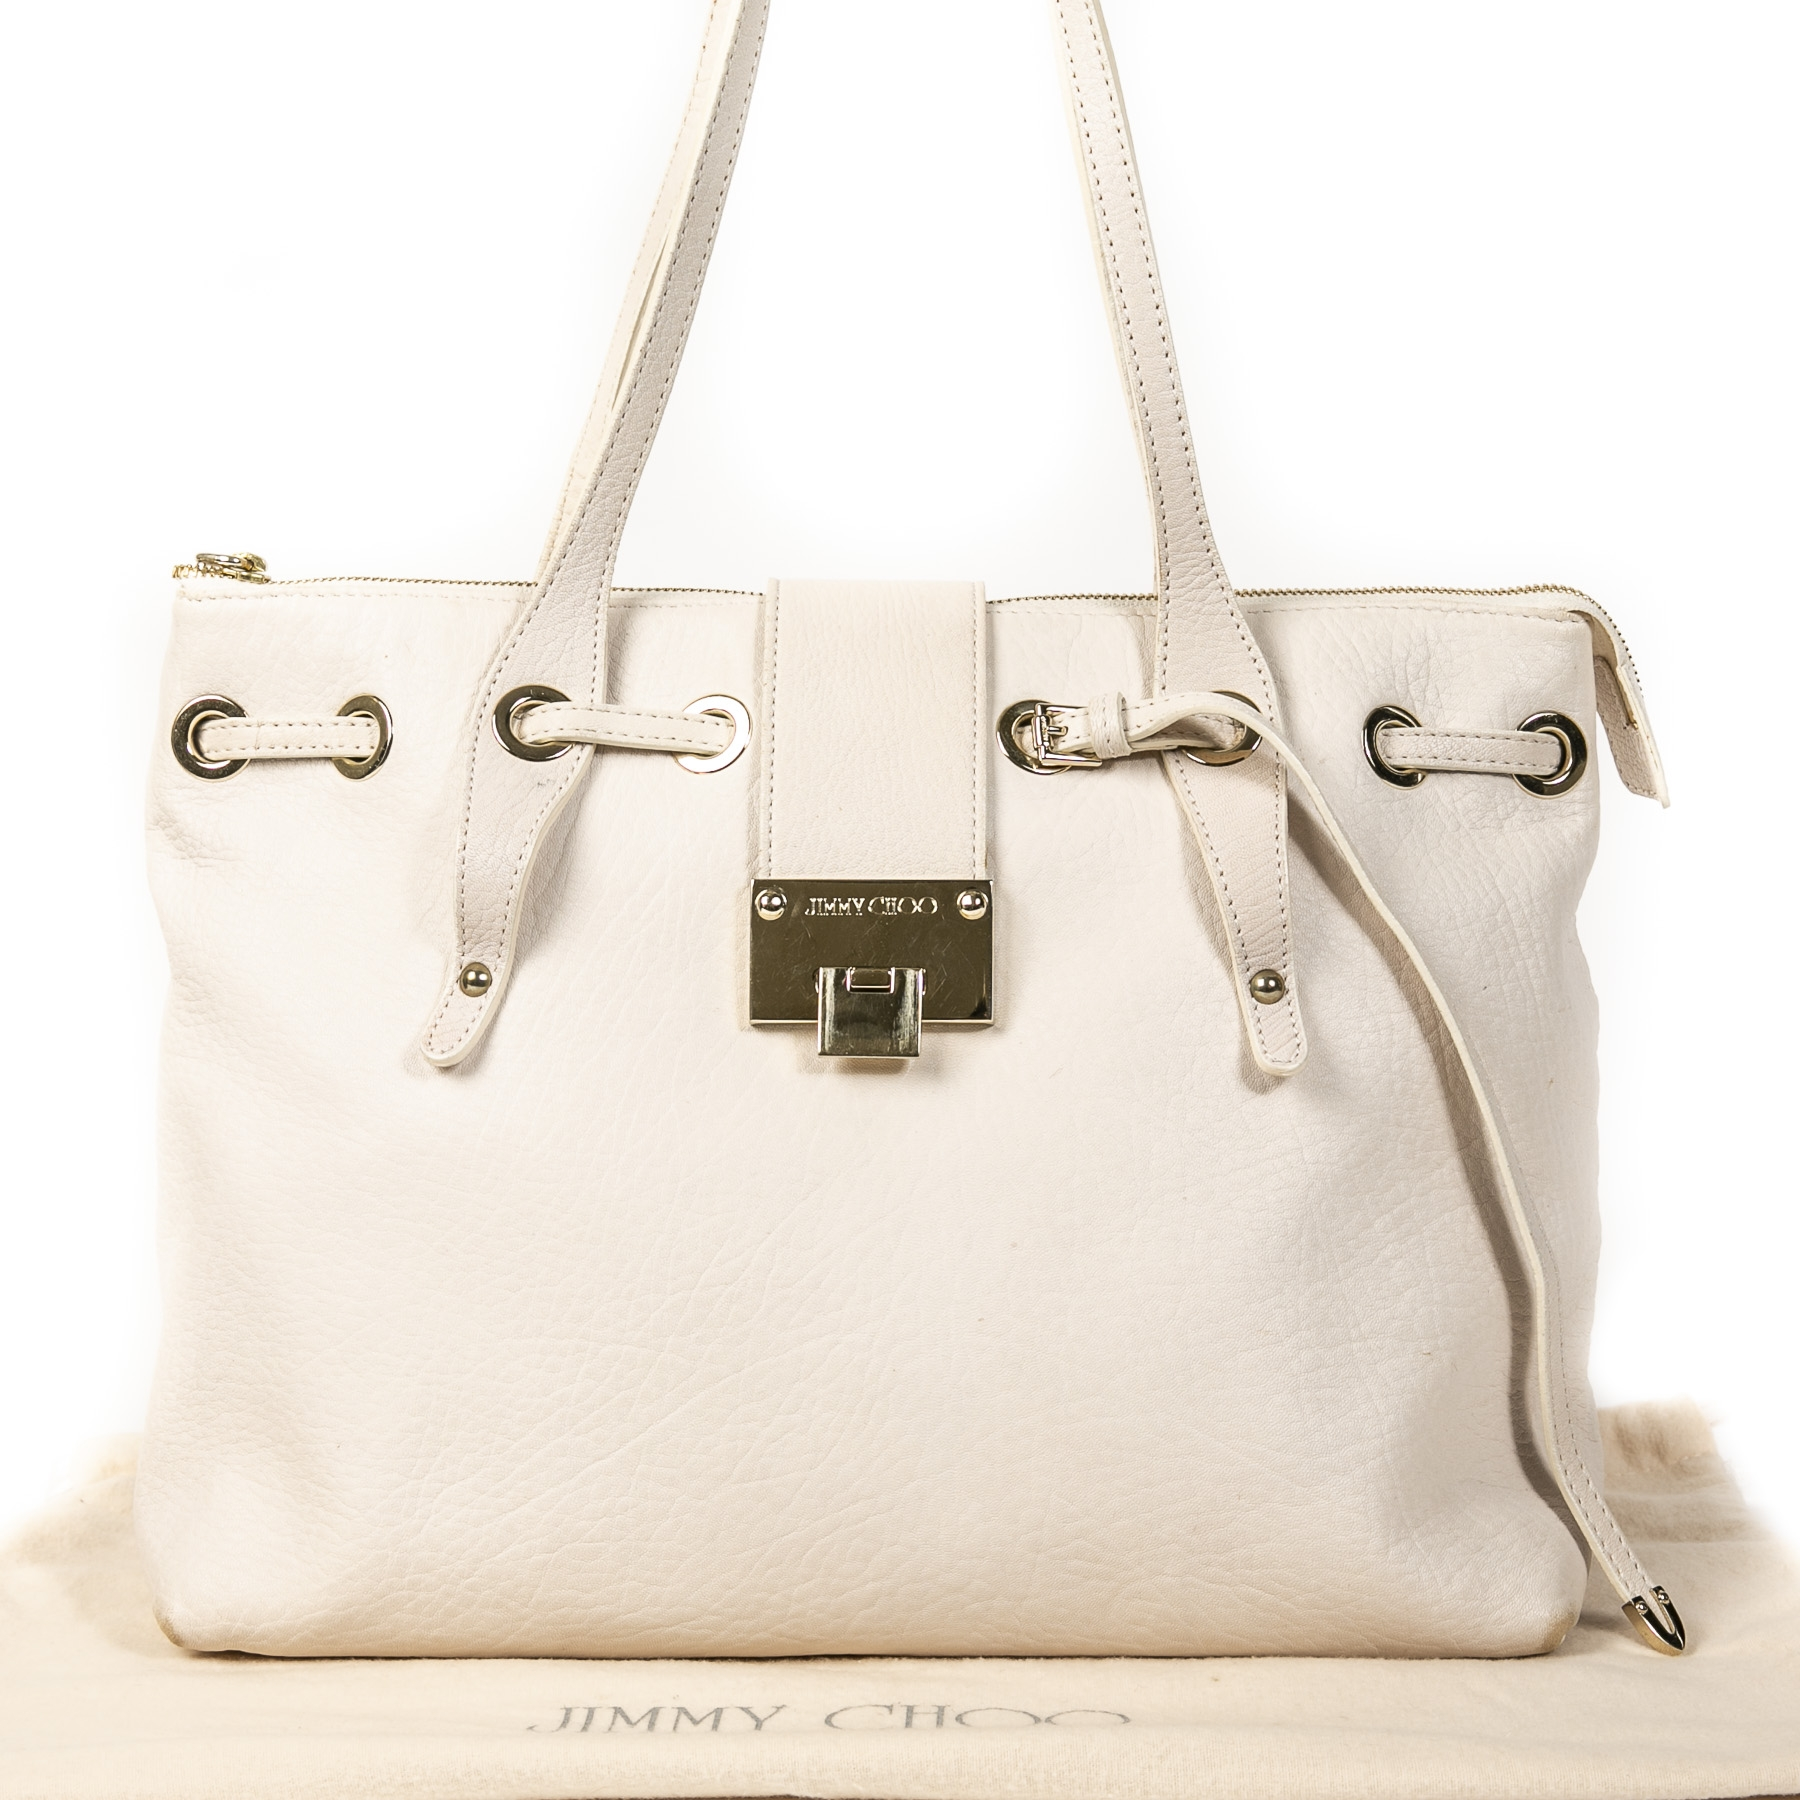 Jimmy Choo White Leather Shoulder Tote kopen en verkopen